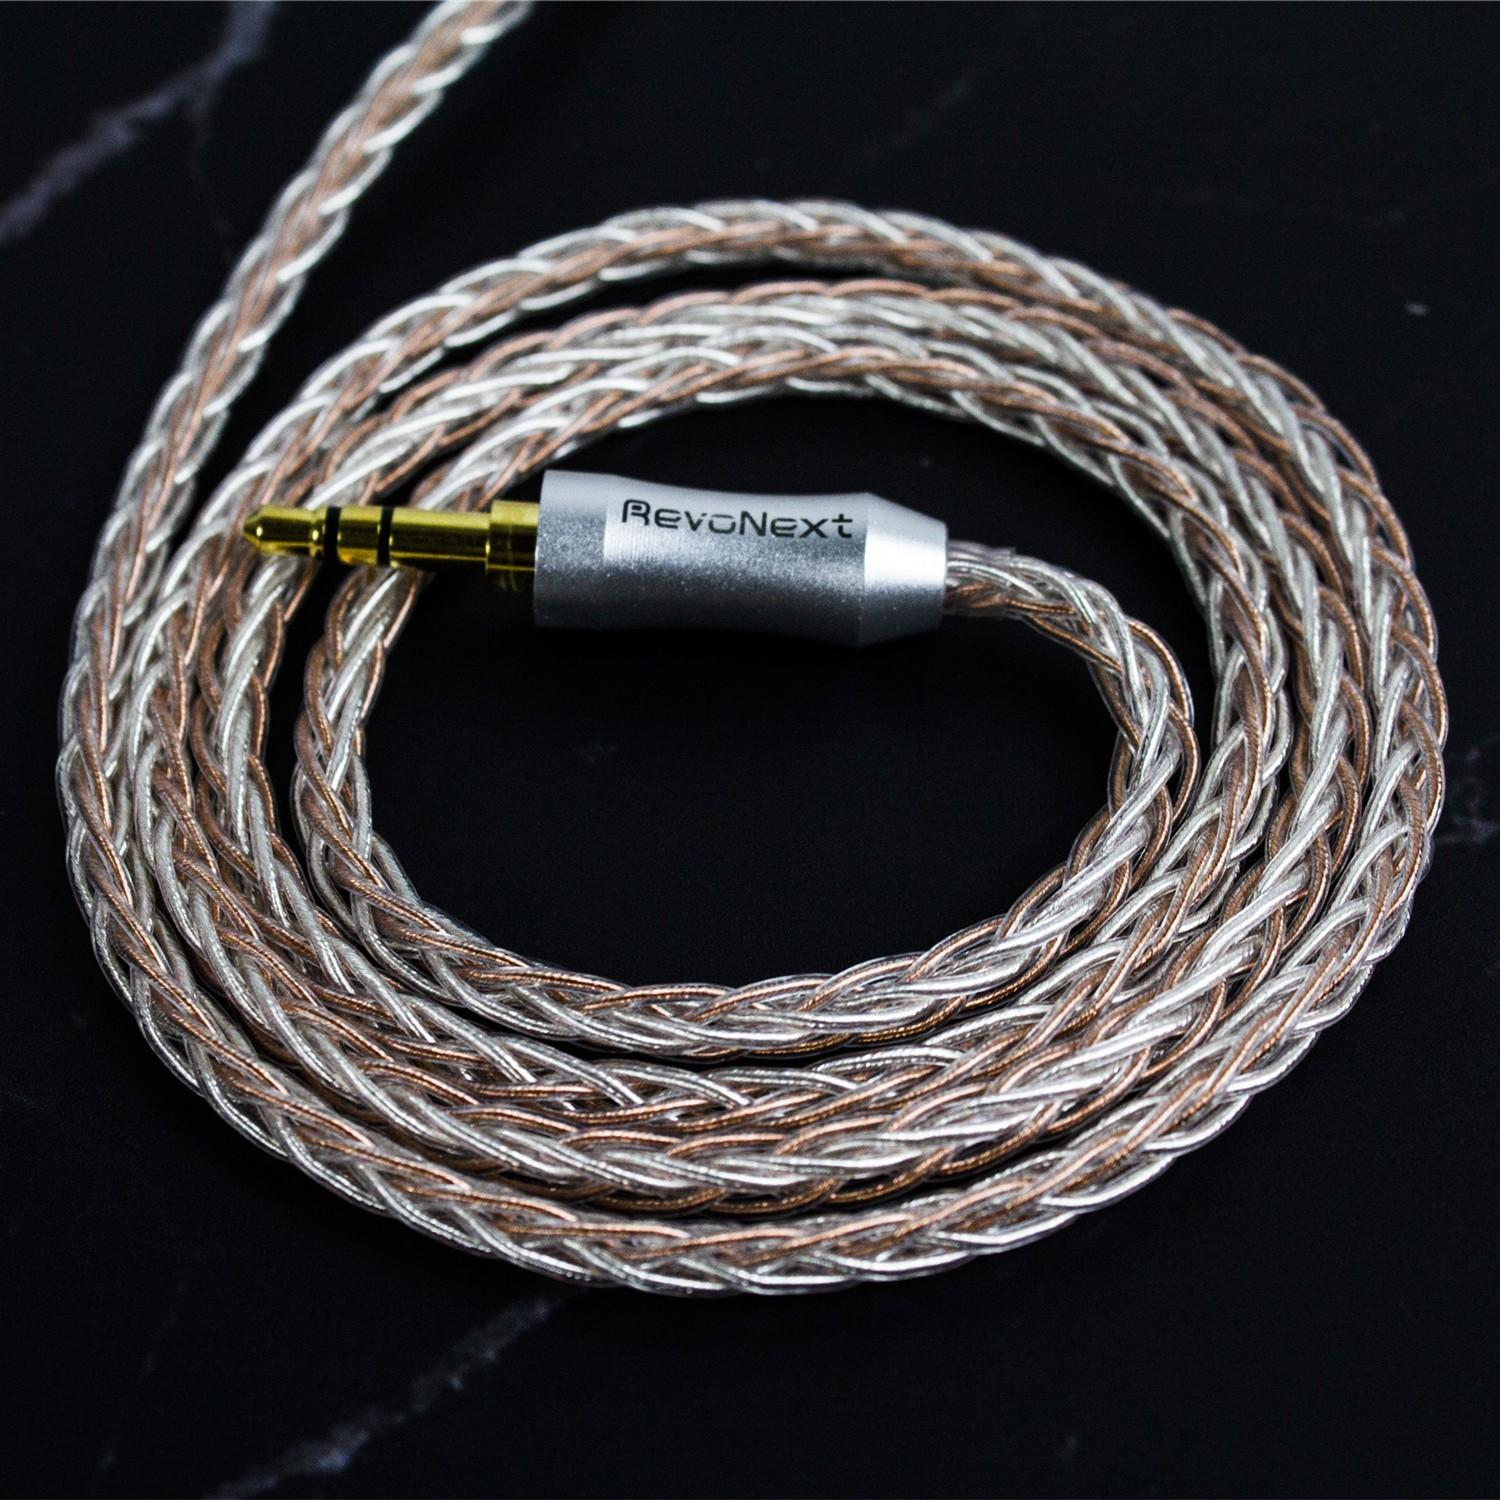 RevoNext 2 pin bluetooth cable best manufacturer for headphone